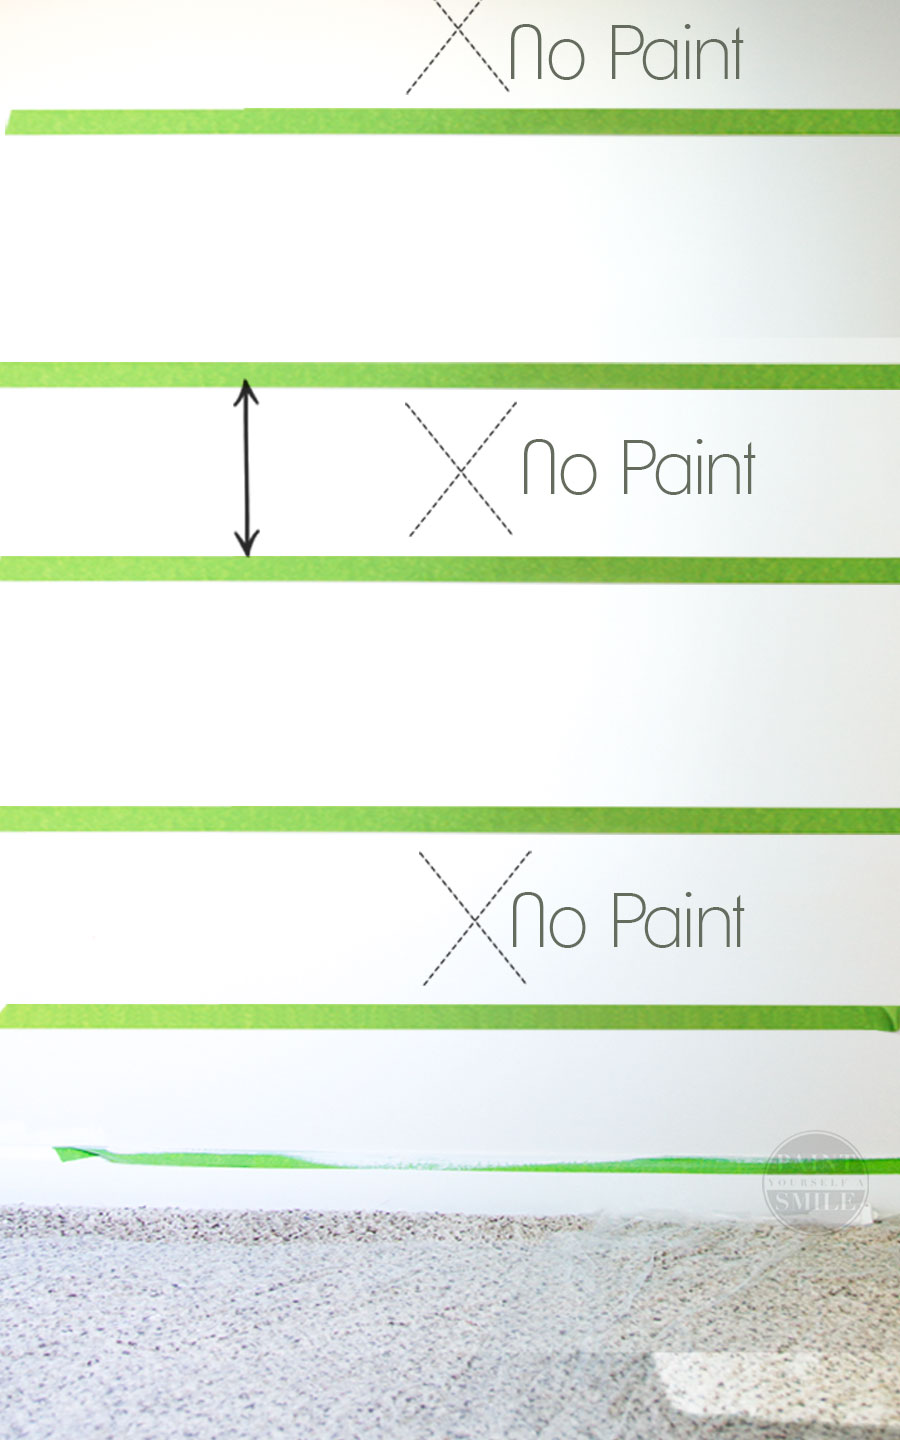 How to get bleed free flawless results with painters tape and step by step instructions to quickly transform a room